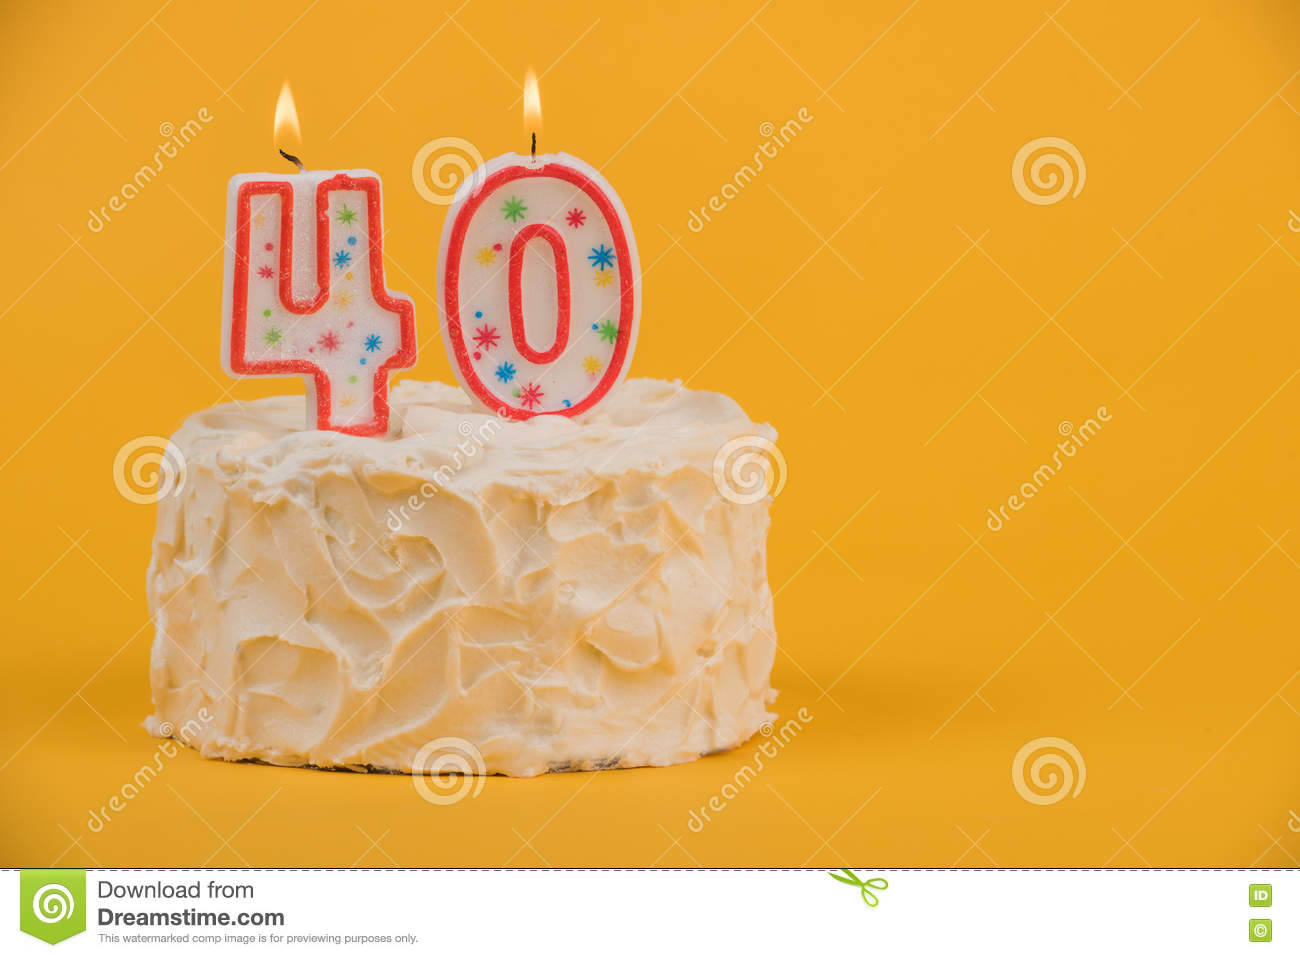 White Frosted Cake With 40 Candles